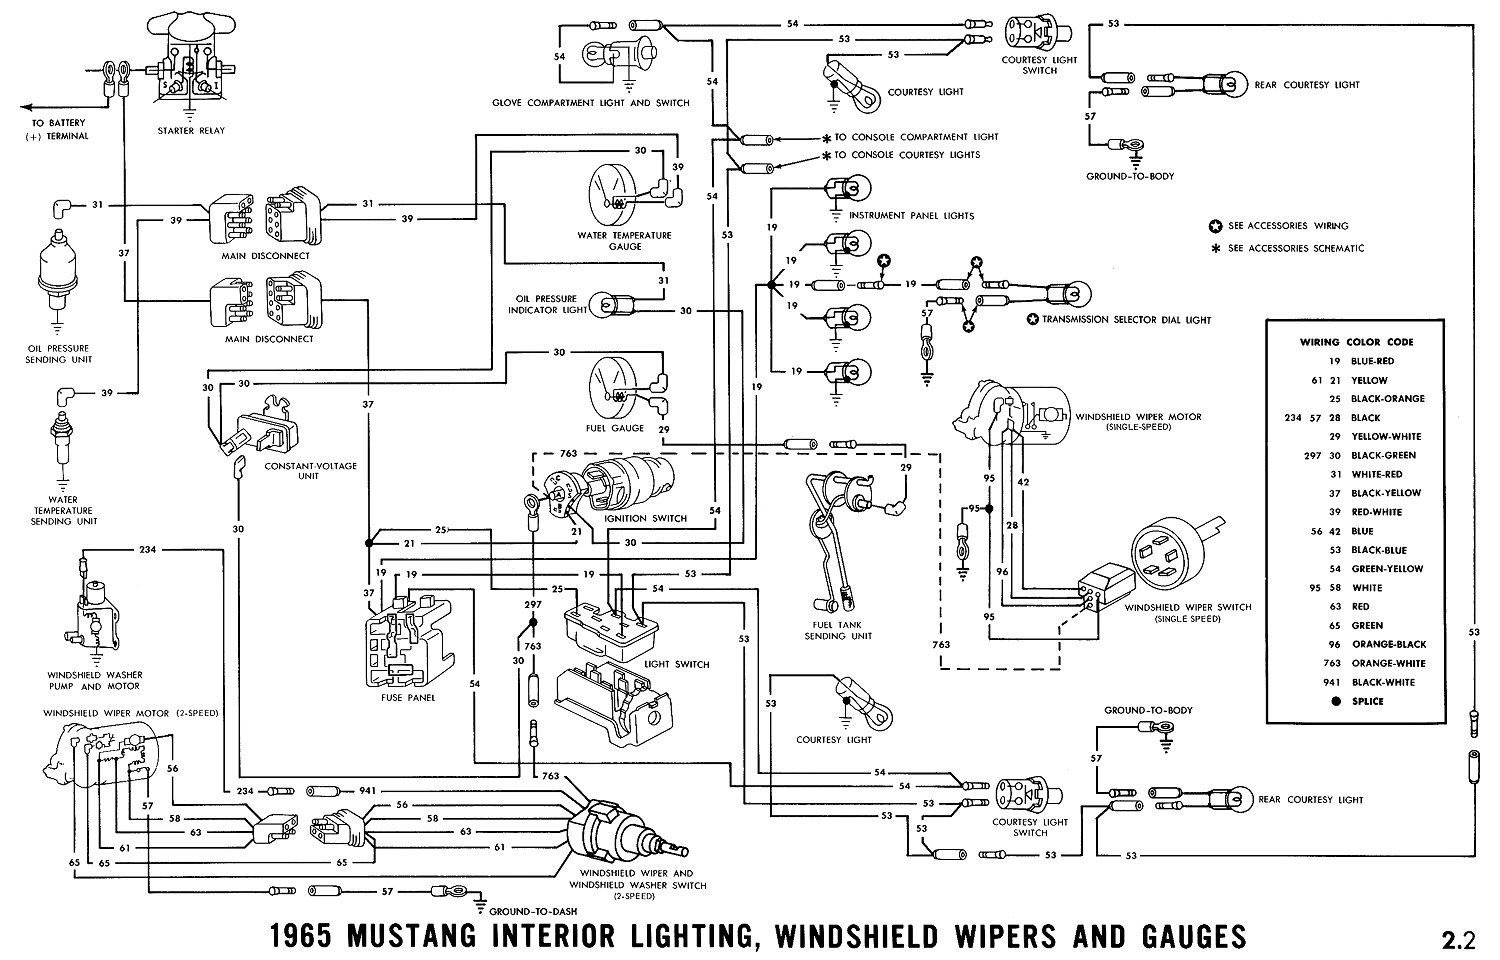 1965 Mustang Wiring Diagrams Average Joe Restoration. 1965 Mustang Interior Lights Windshield Wiper And Gauges Pictorial Or Schematic Oil Pressure. Wiring. 89 Mustang Dash Wiring Schematics At Scoala.co